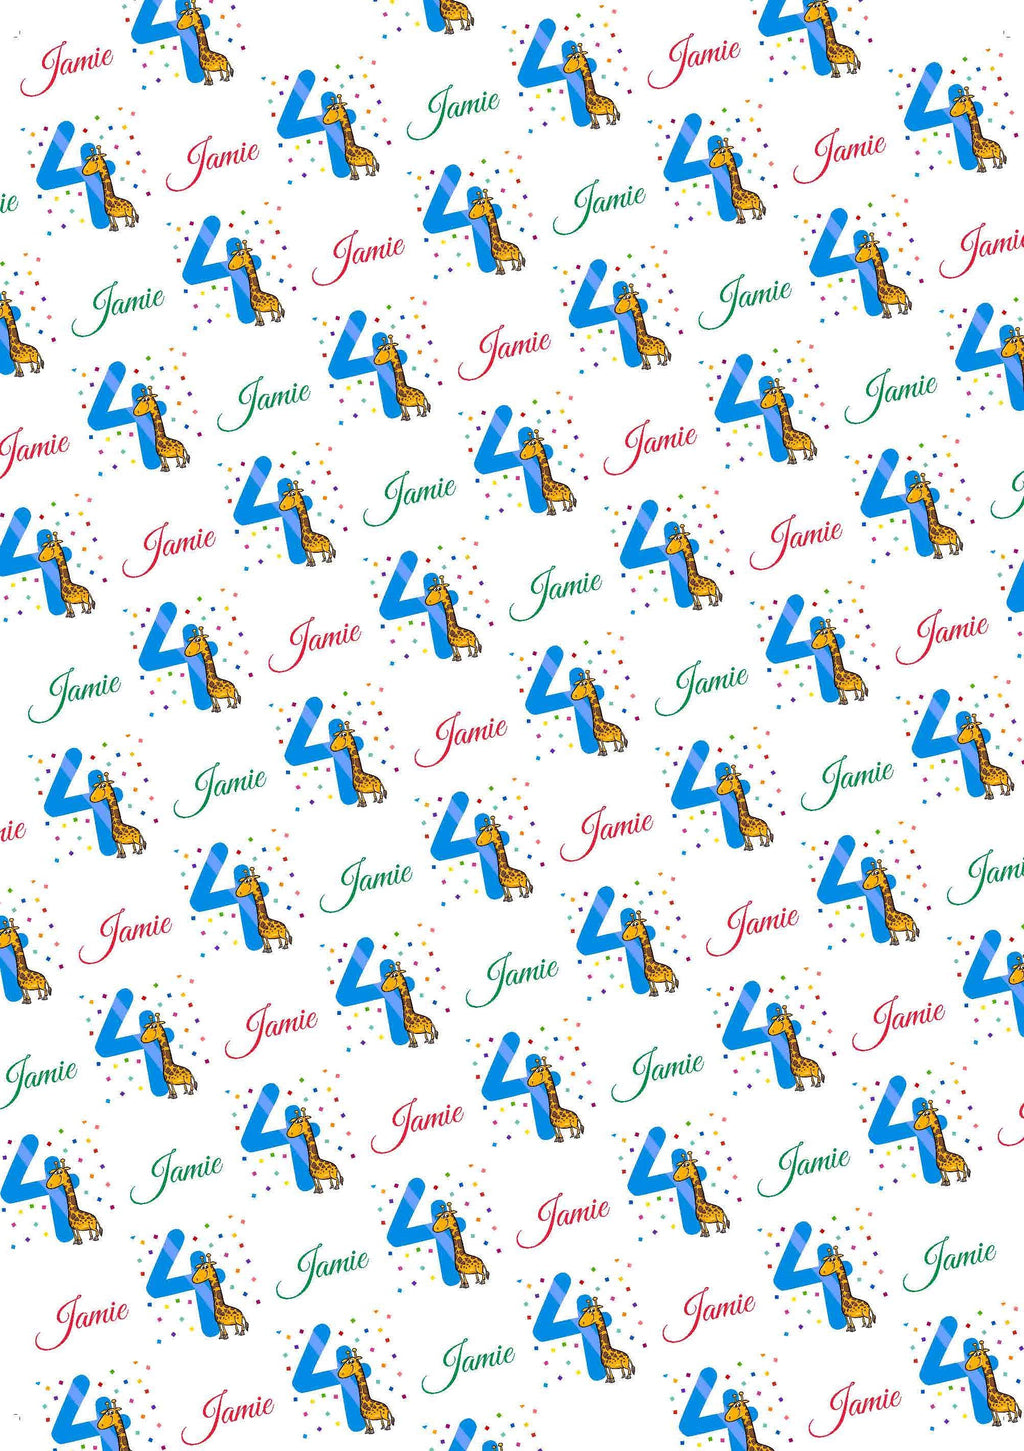 4th Birthday Giraffe Personalized Birthday Gift Wrap - Potter's Printing